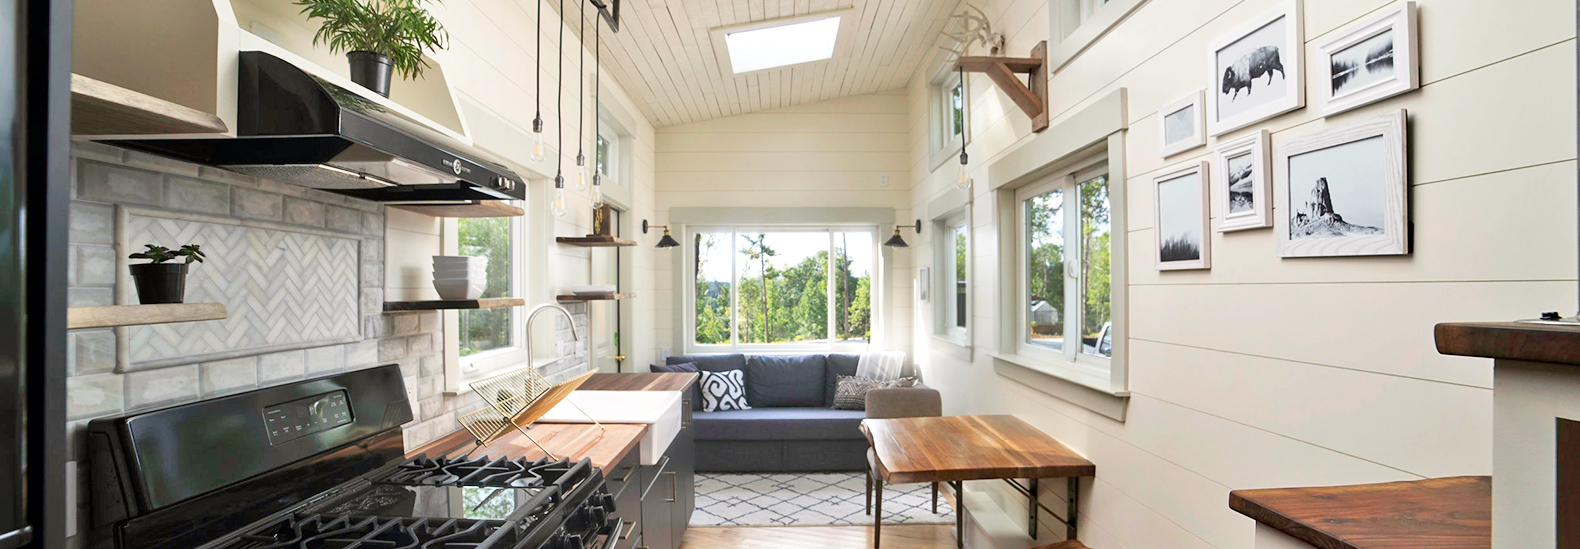 This light-filled tiny house is made almost entirely of reclaimed ...